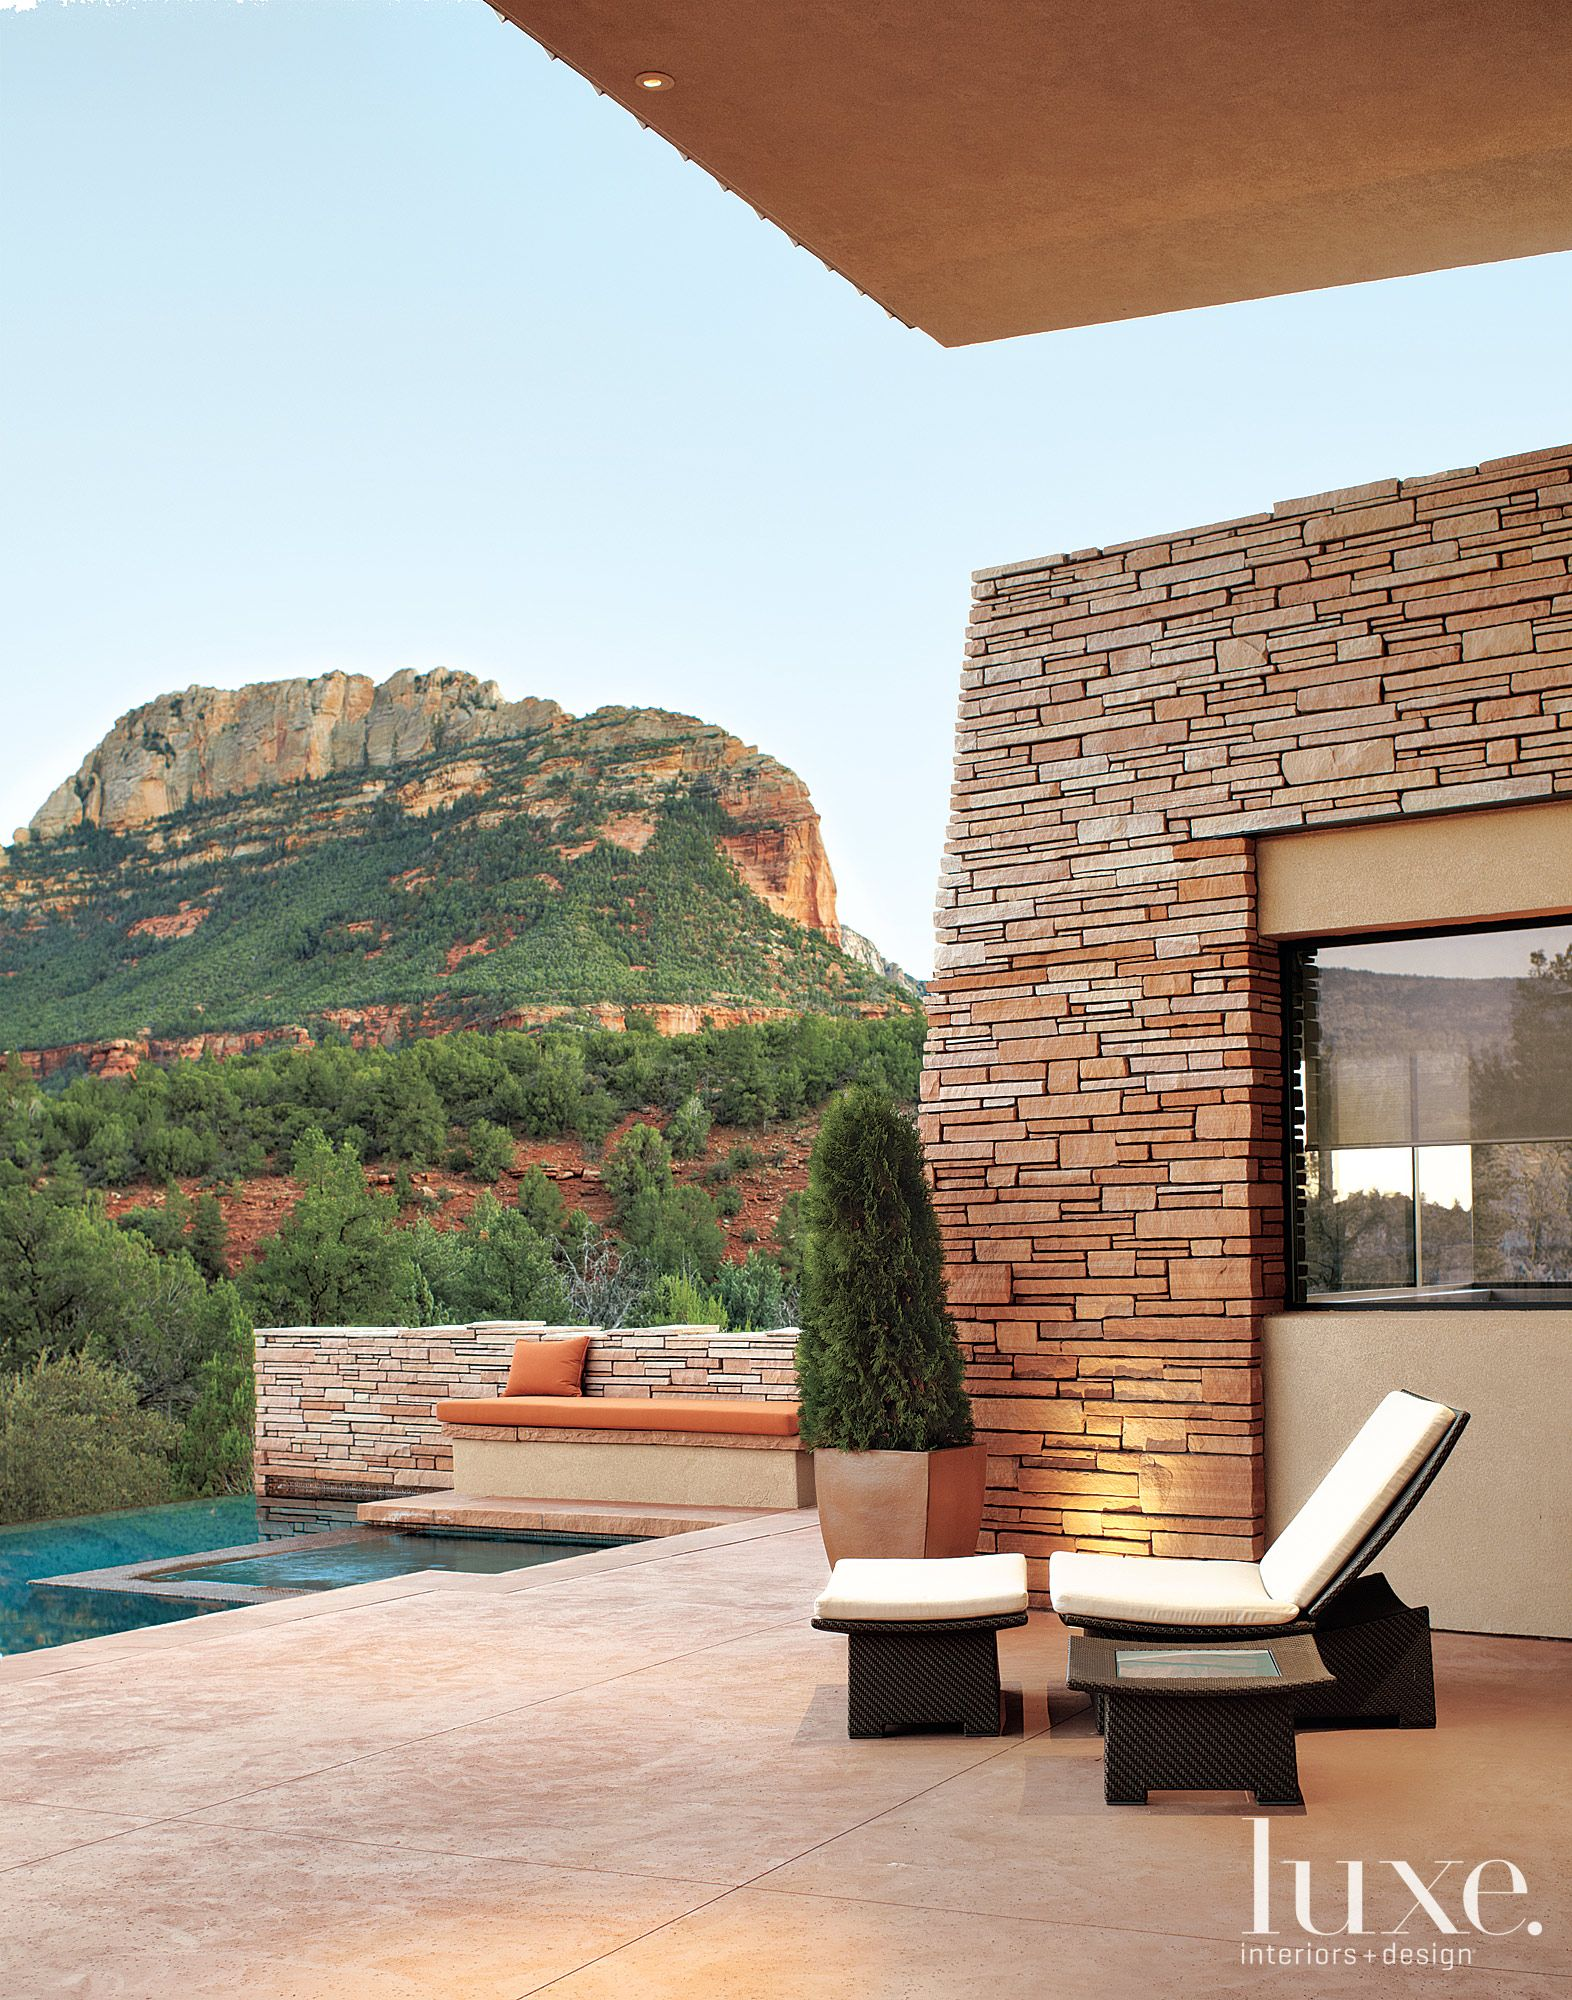 Designer Susan Foley Larson and architect Erik Peterson work together to perfect this harmonious Sedona home in our Arizona Winter 2012 issue.